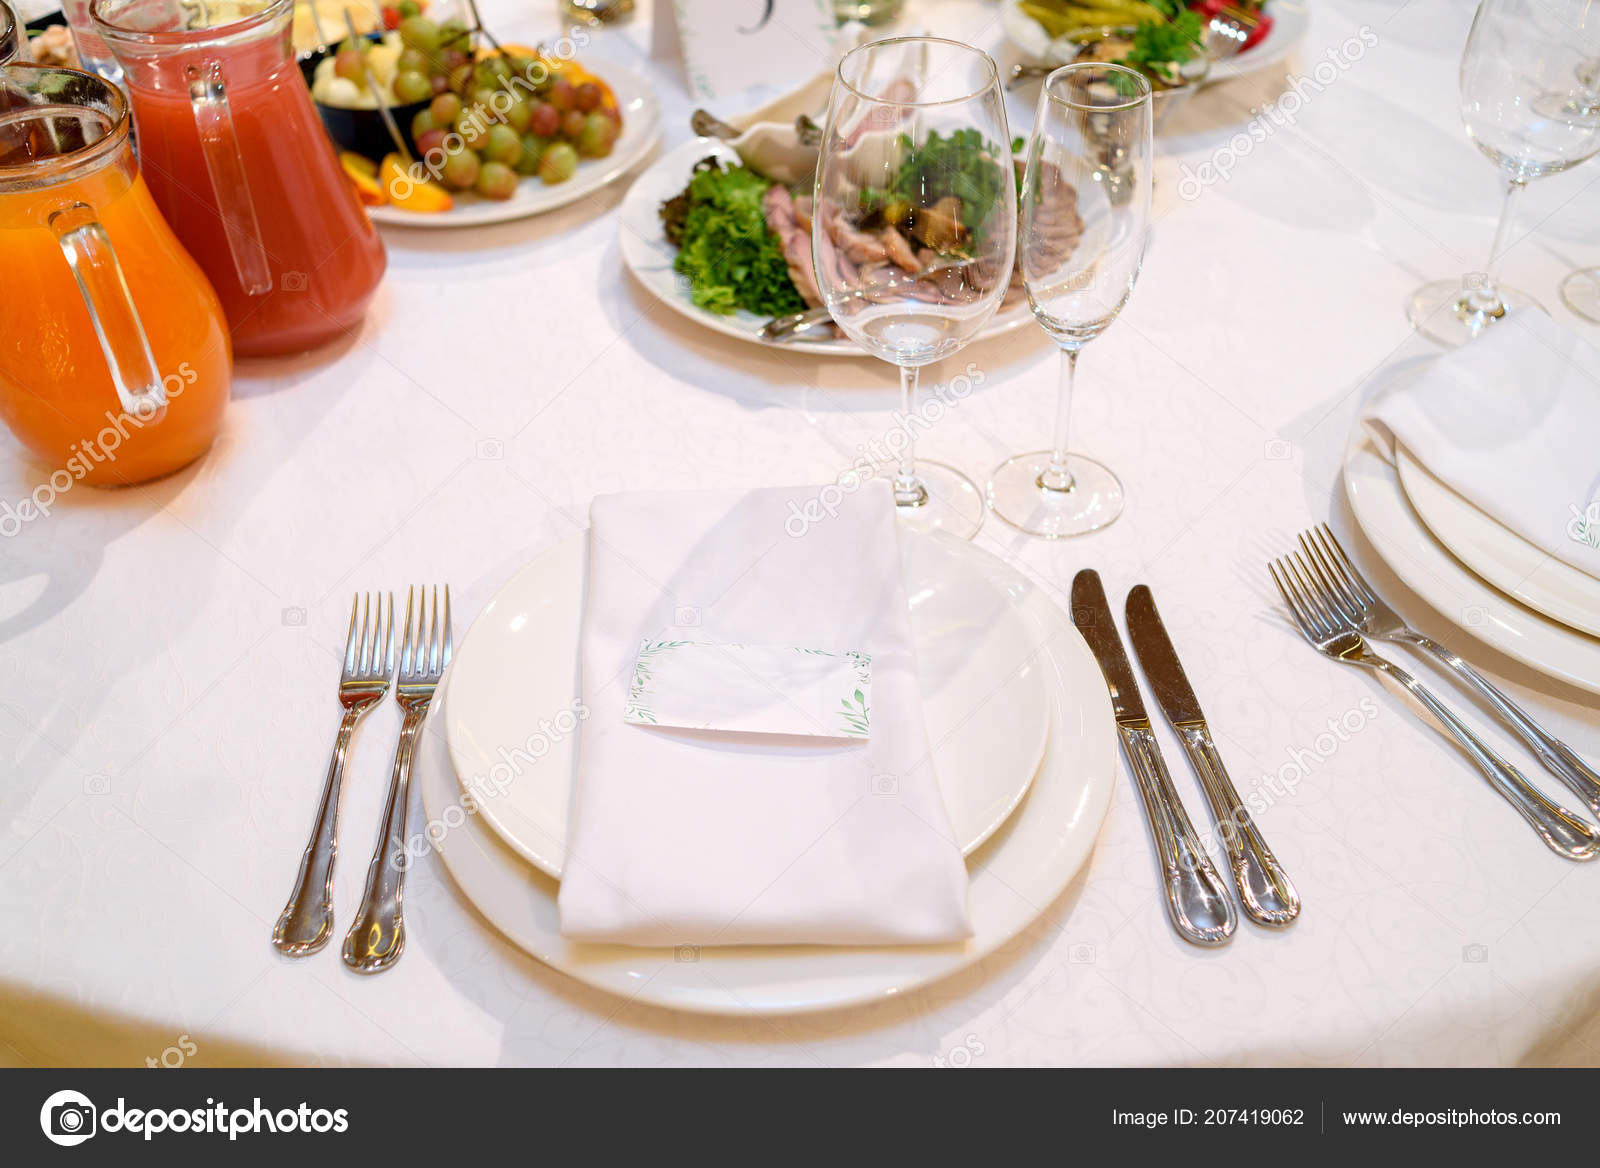 Dinner Place Setting Blank Guest Card White Table Napkin Wedding Stock Photo Image By C D Duda 207419062